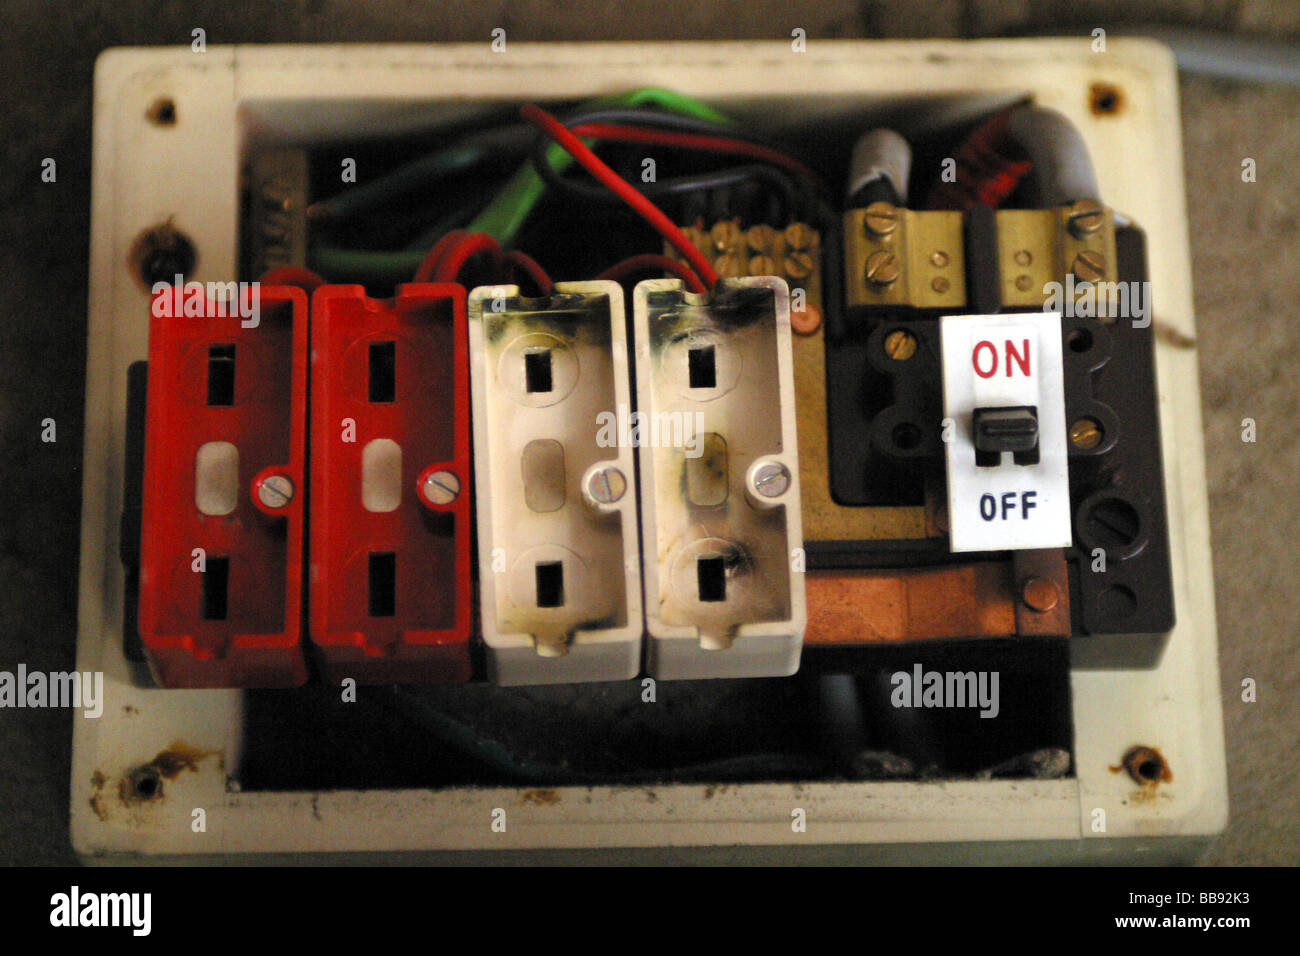 Safety Fuse Box | Wiring Diagram on electrical wiring box, electrical distribution box, circuit breaker box, solid state relay box, electrical wiring details, electrical chassis control module, electrical box diagram, main electrical box, electrical switch box, electrical valve box, electrical box cut out, electrical power cable, wiring a 3 gang switch box, electrical panel box, 3 to 4 electrical box, electrical inductor box, electrical extension cord box, electrical safety signs, electrical fuses small to largest, electrical power box,